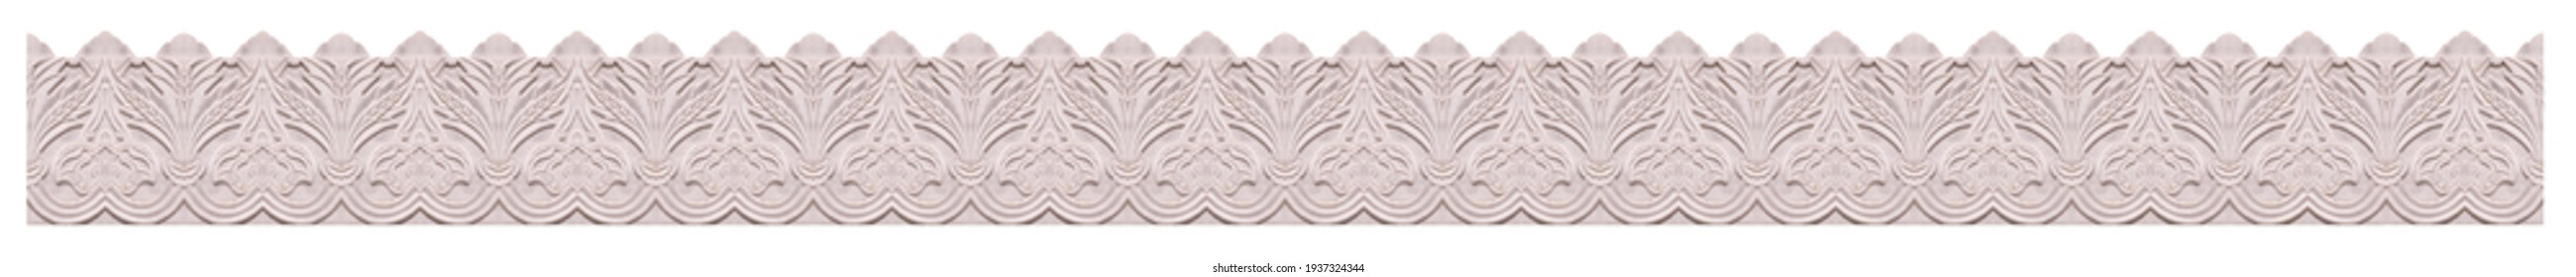 On the streets in Istanbul, public places. Elements of architectural decoration of buildings, plaster stucco, wall texture, plaster molding and patterns.